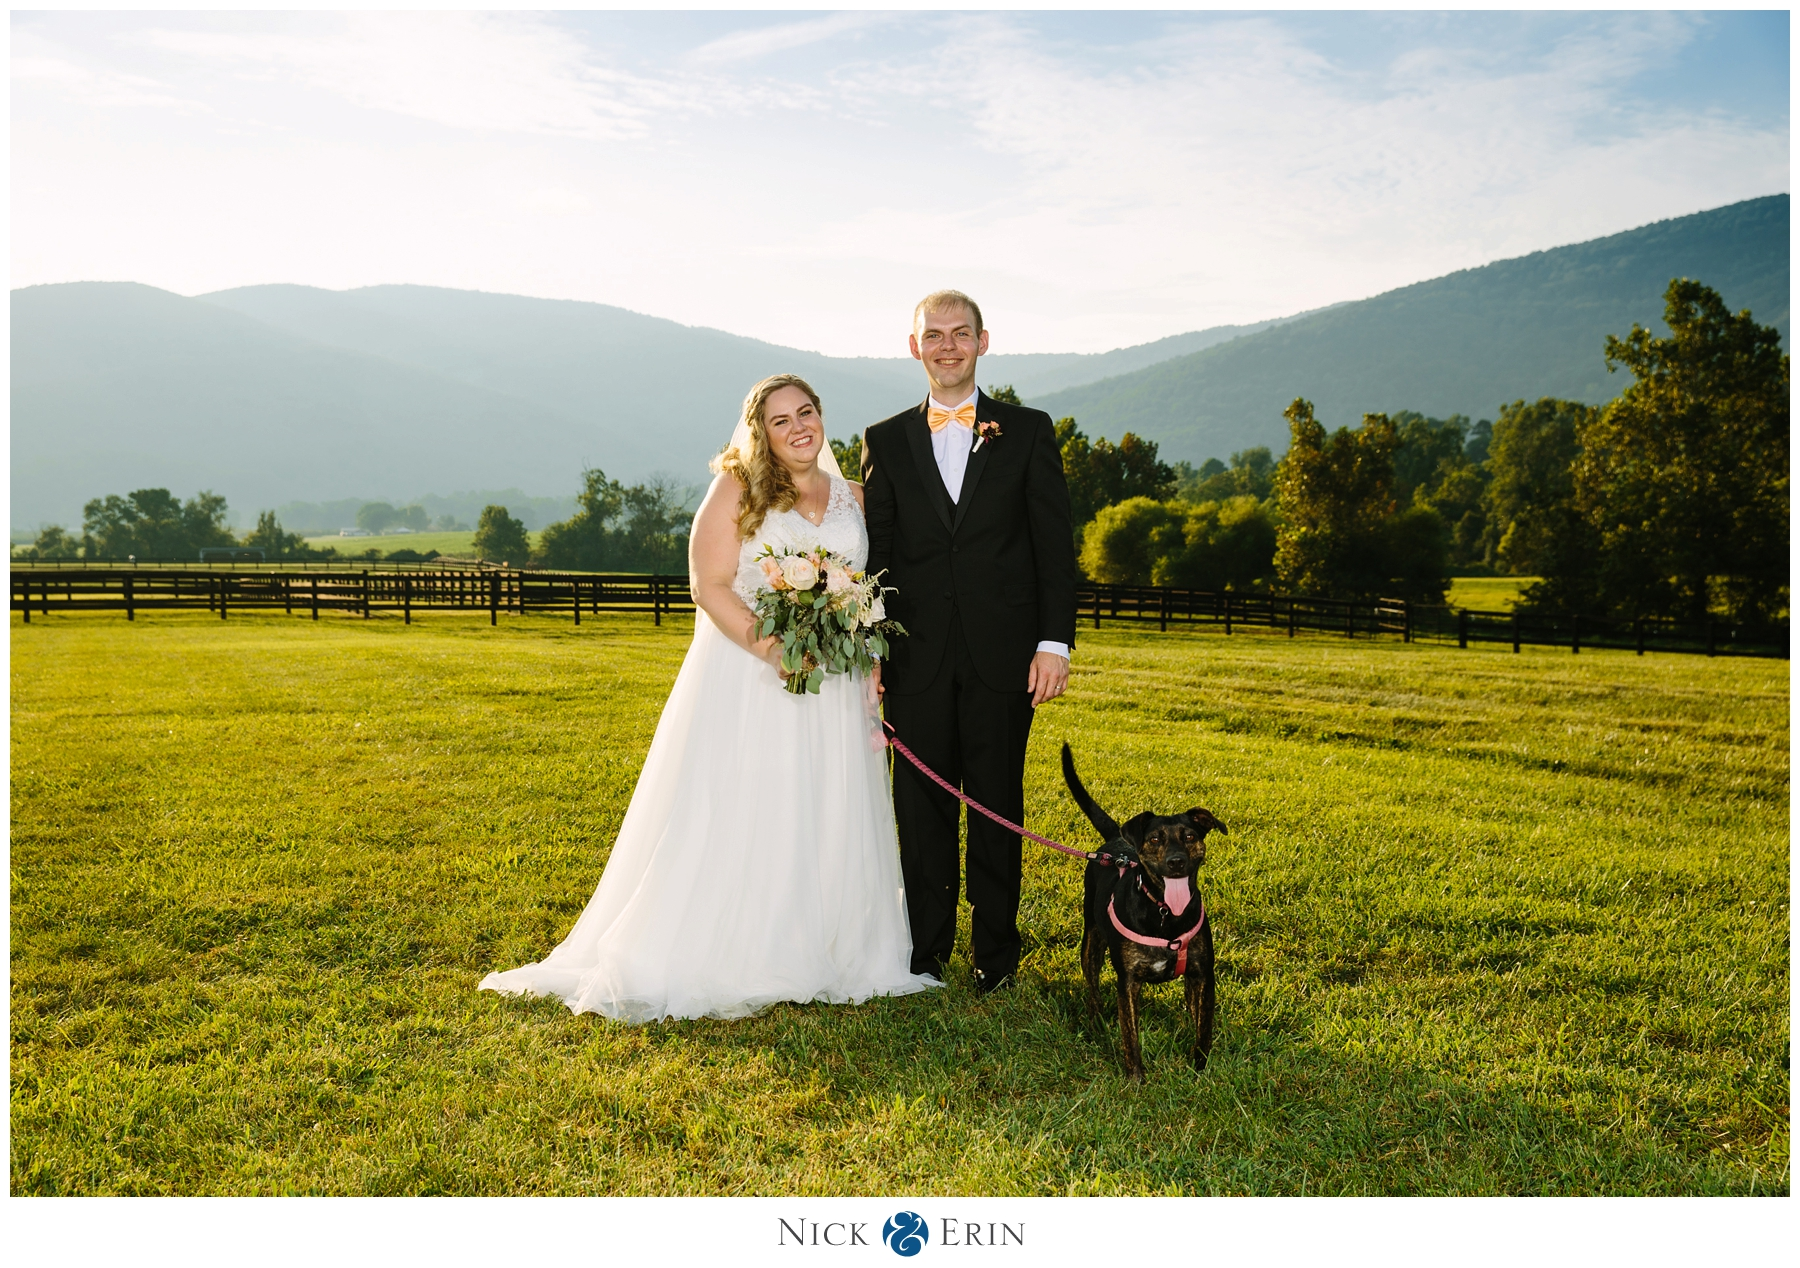 Donner_Photography_Charlottesville Virginia Wedding_Jennifer & Chris_0047